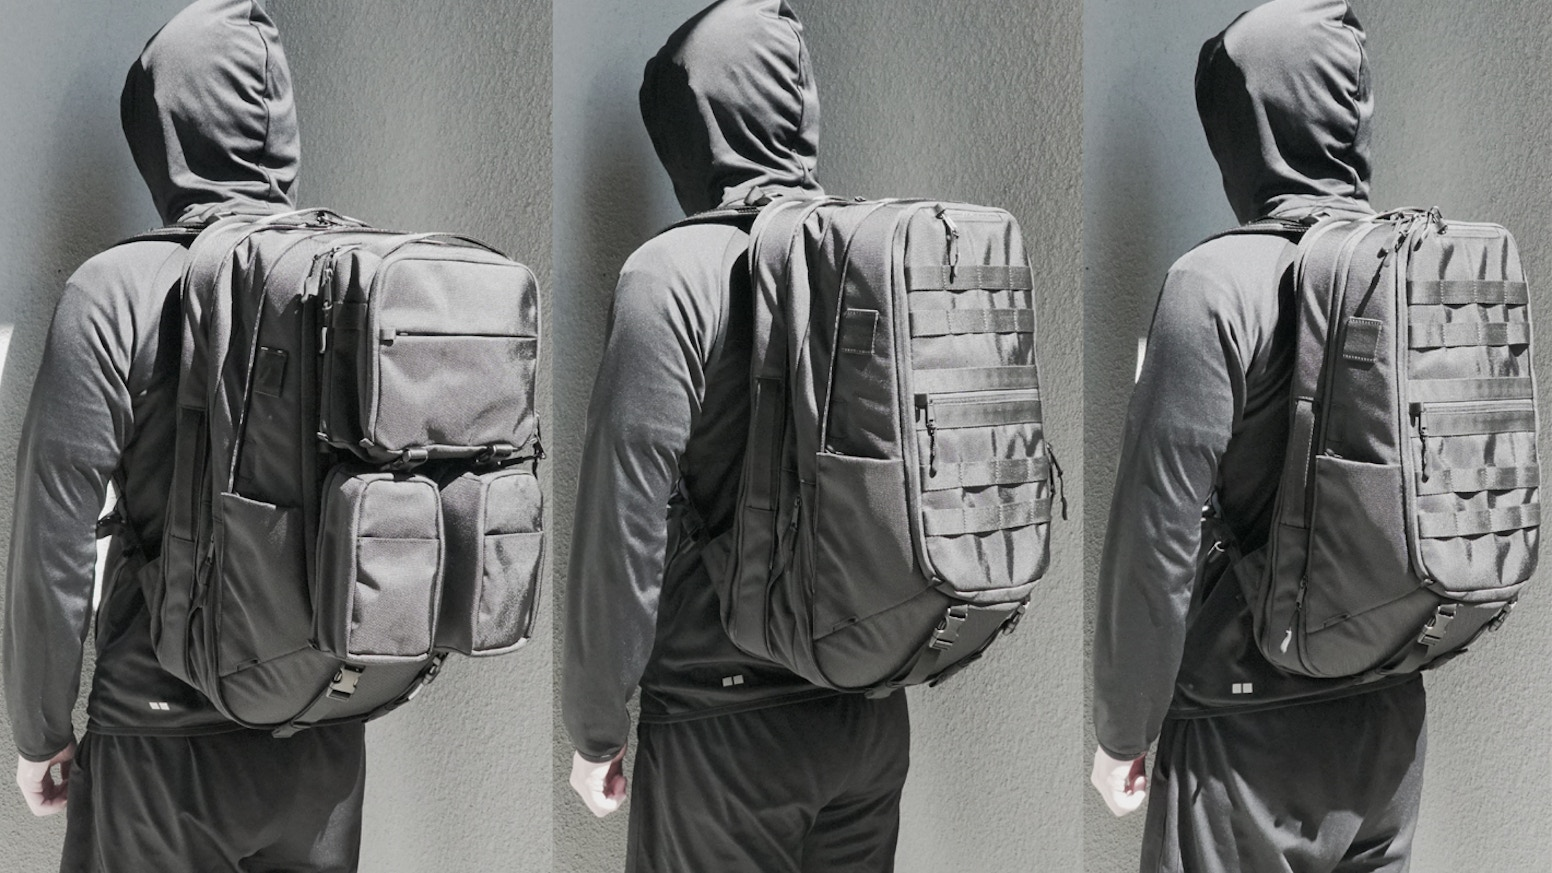 The First Magnetic Molle Travel & Daily Backpack, which adjusts depending on your activity or occasion.